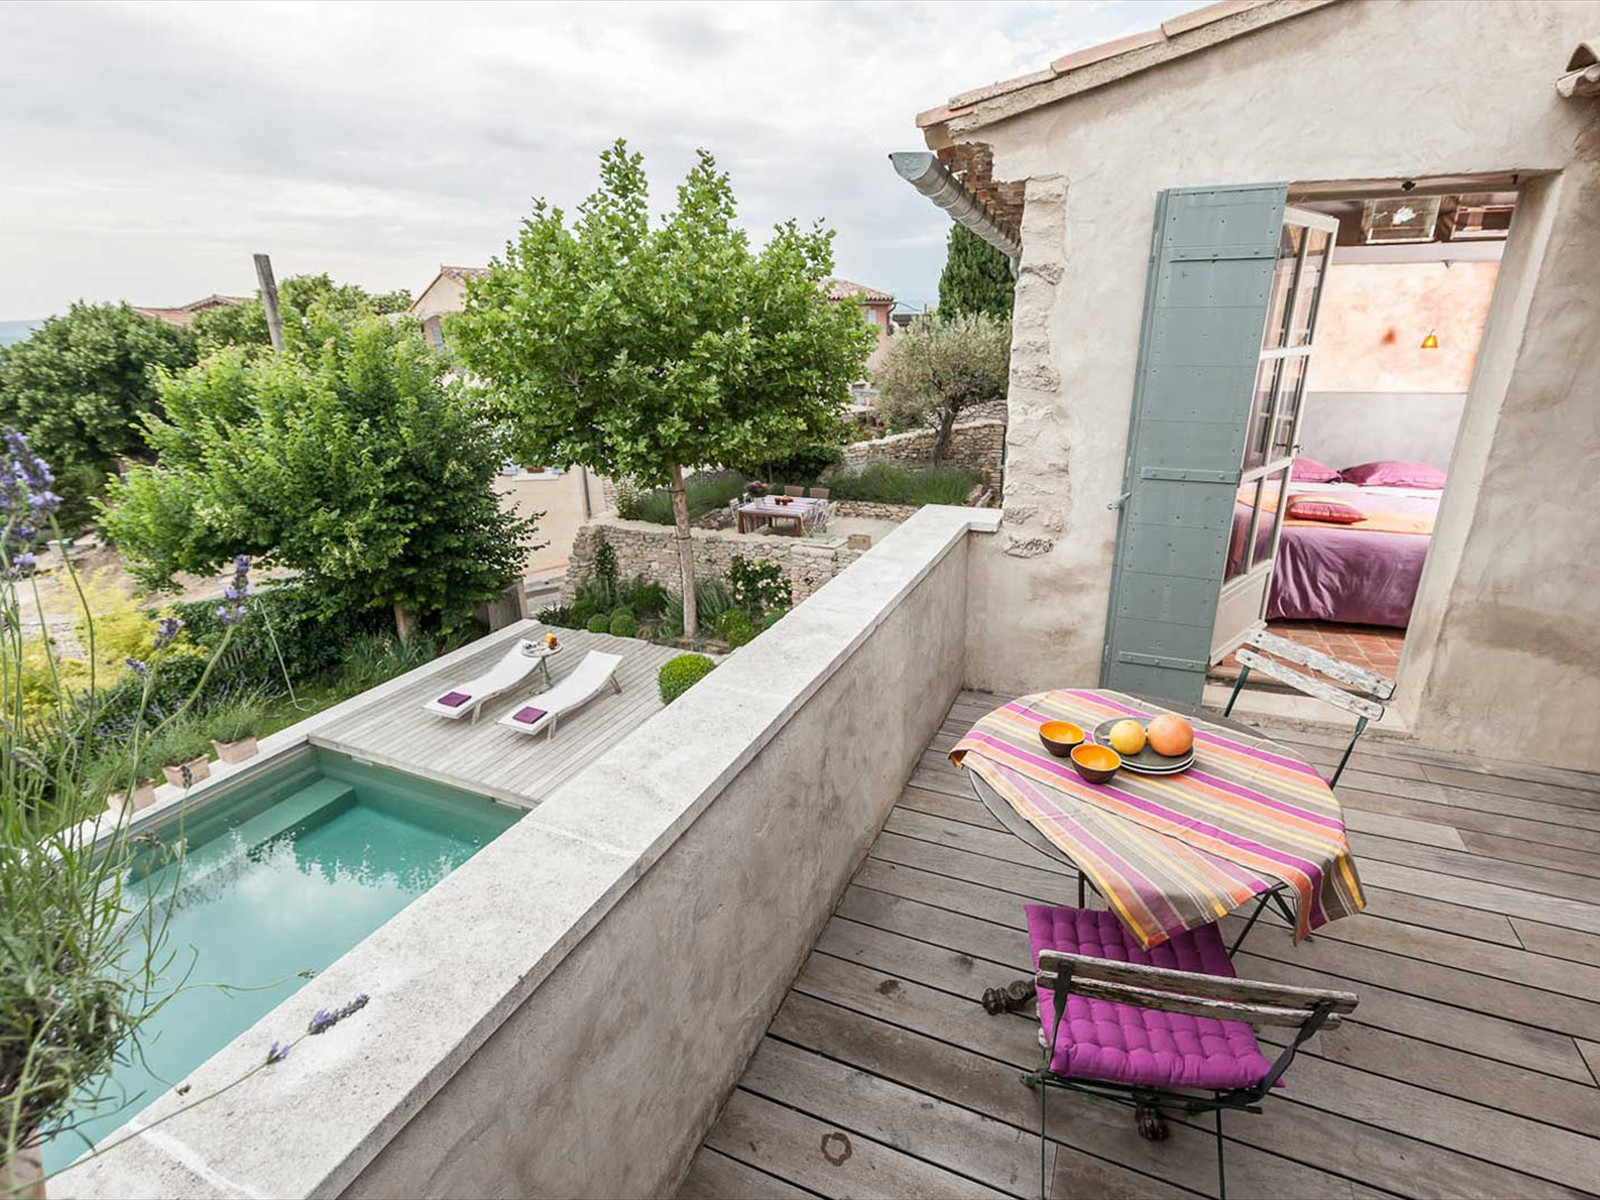 exclusive_rentals_provence_vacation_luxury_homes_holiday_rentals_mont_ventoux_luberon_17